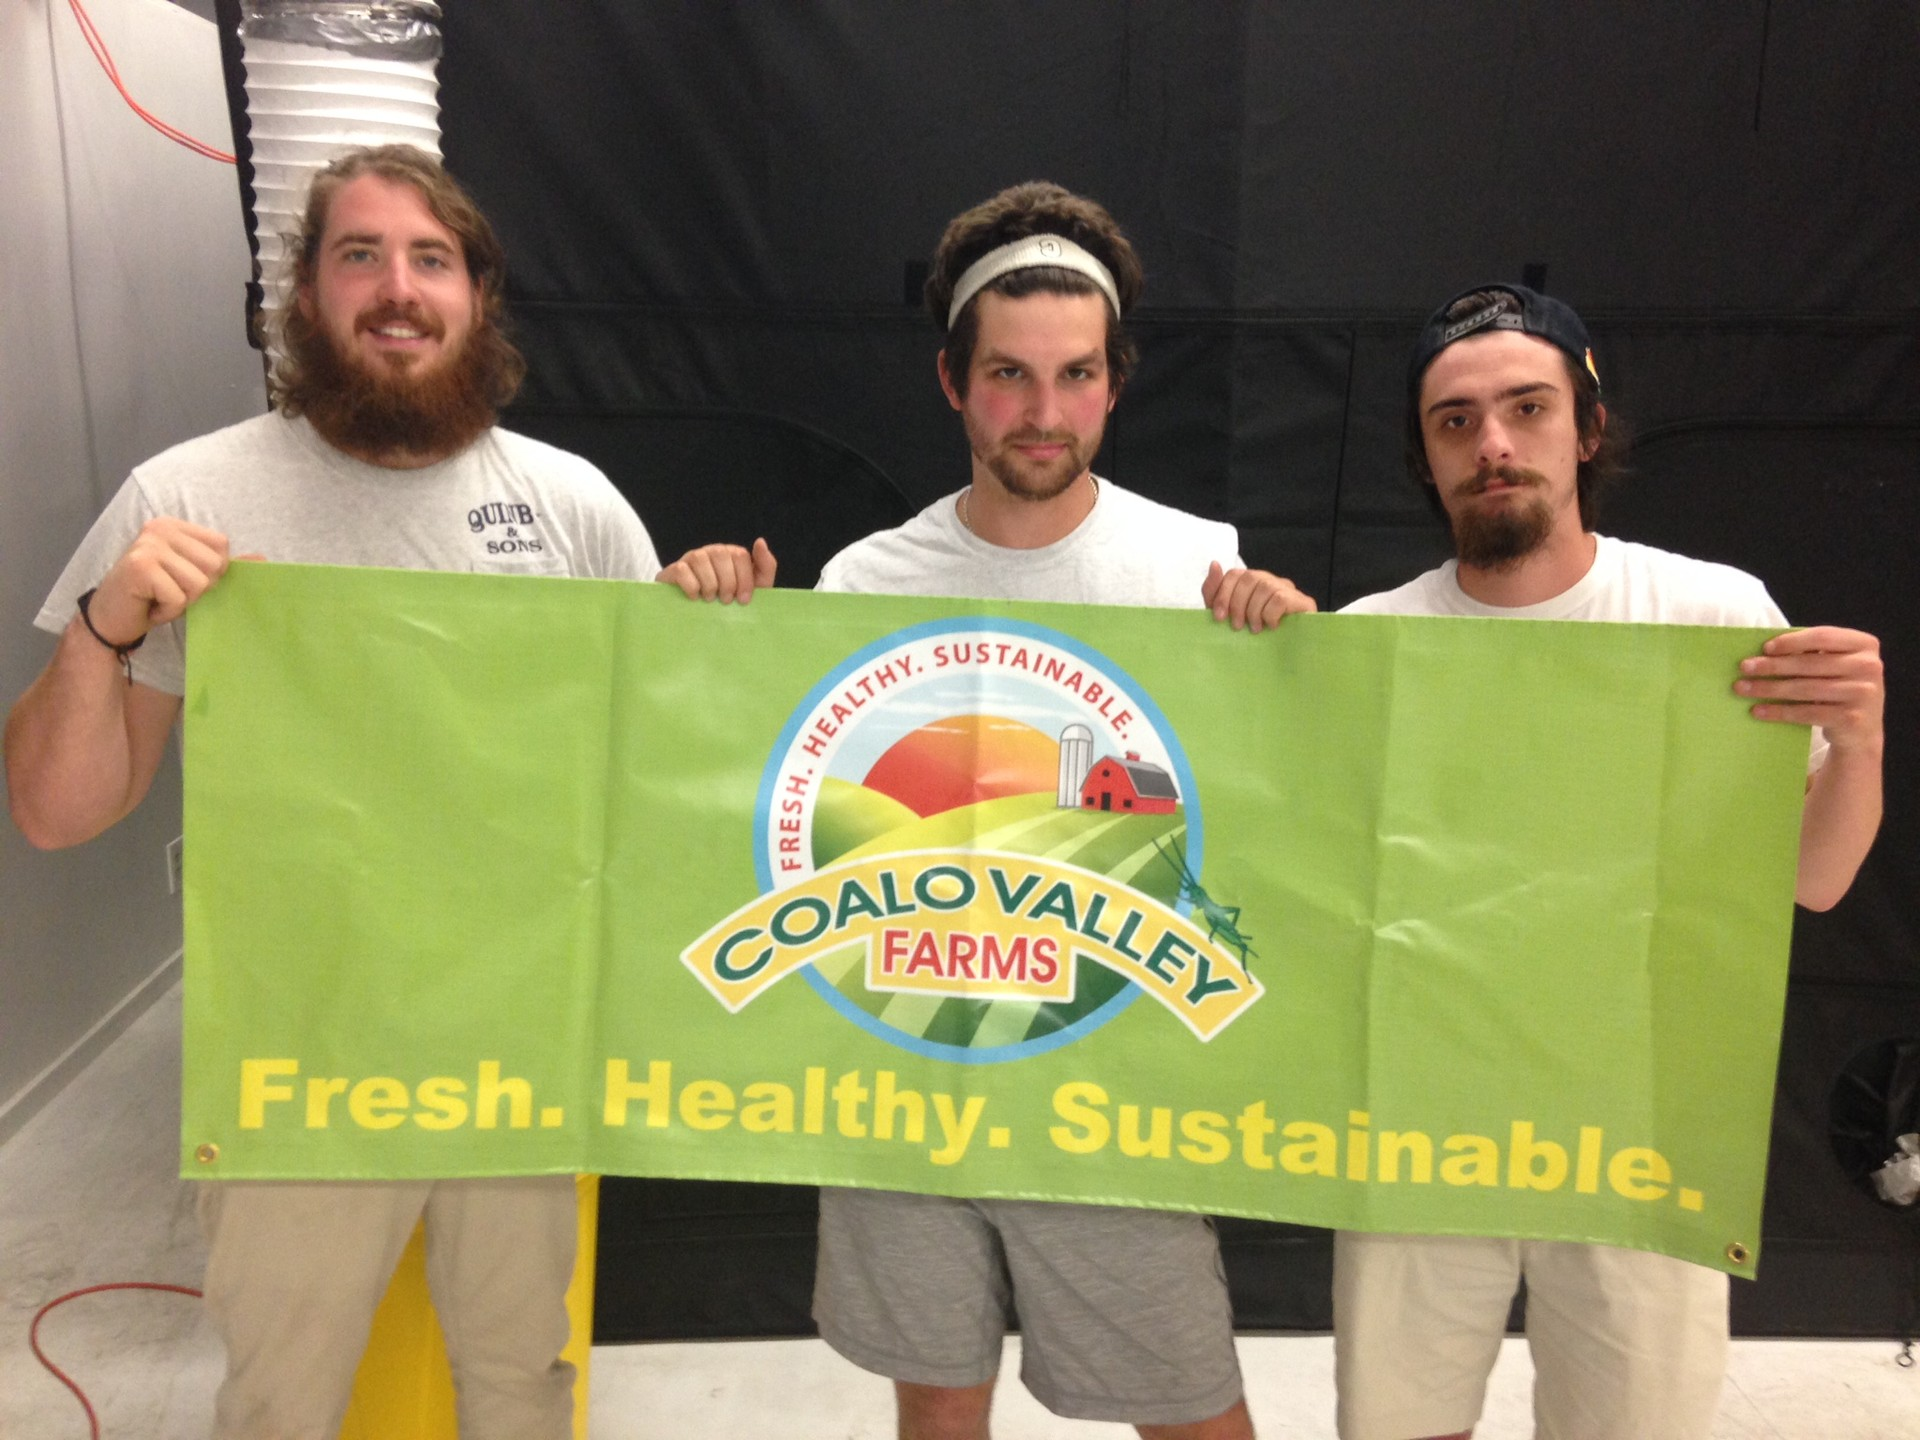 Coalo Valley Farms founders (from left) Peter Markoe, Elliot Mermel and Nate Snow.